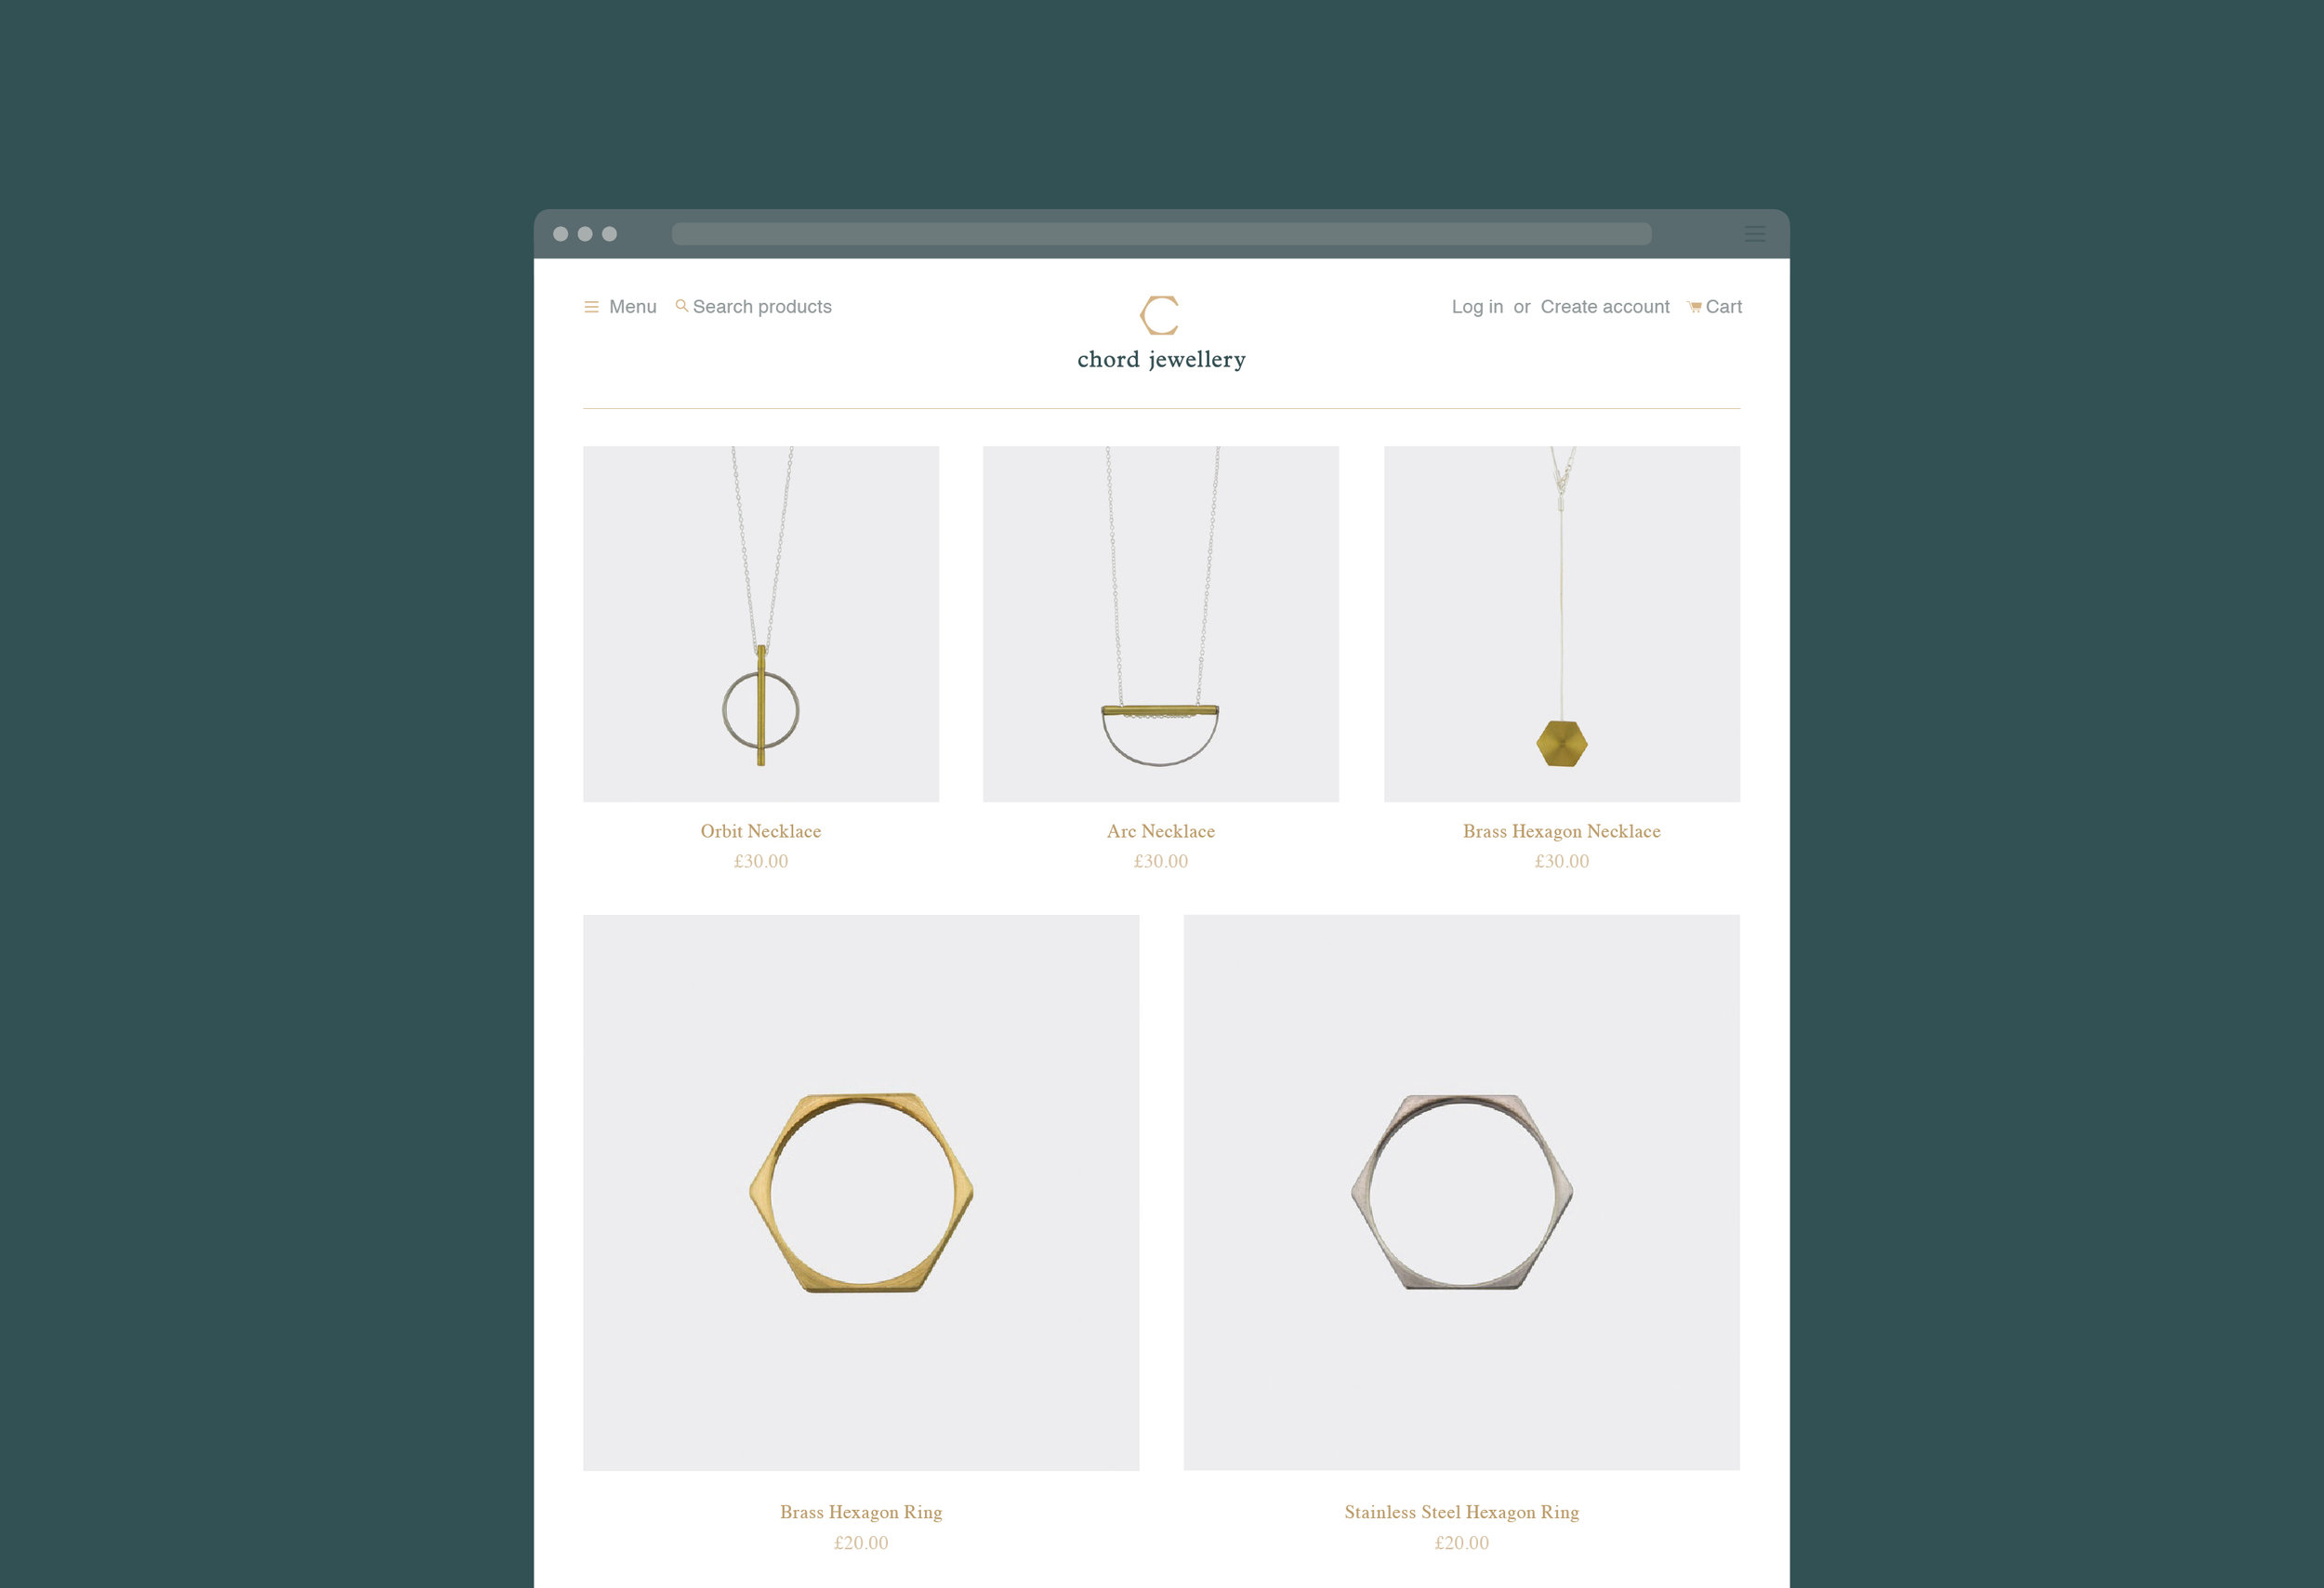 Chord_Jewellery_identity_design_Alan_Clarke-Symonds_graphic_design_website_homepage_015.jpg